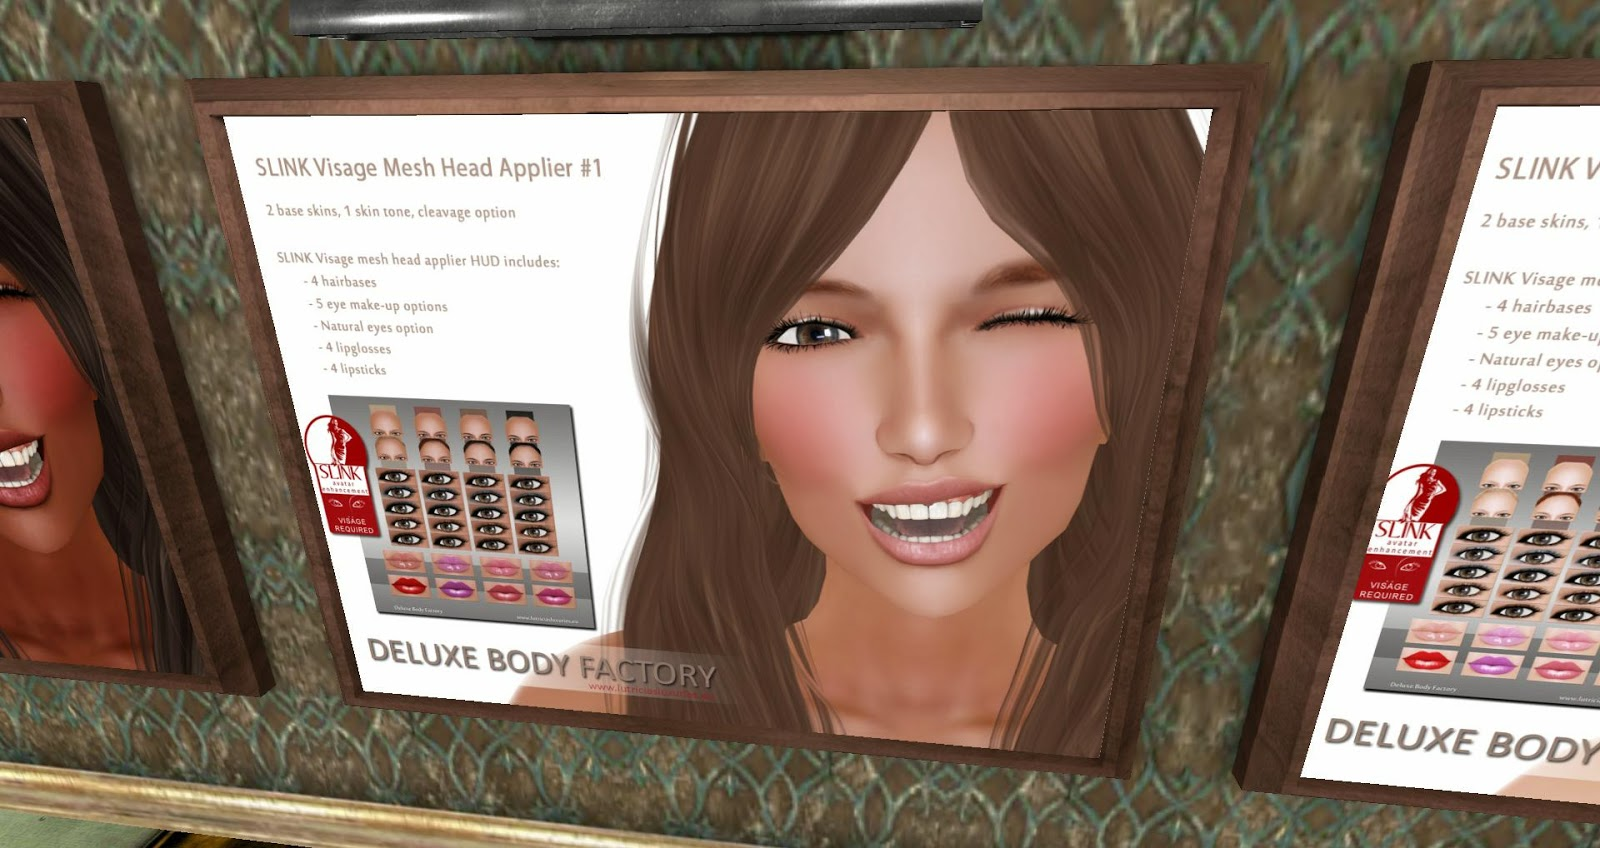 chey s second life blog don t mess with my head